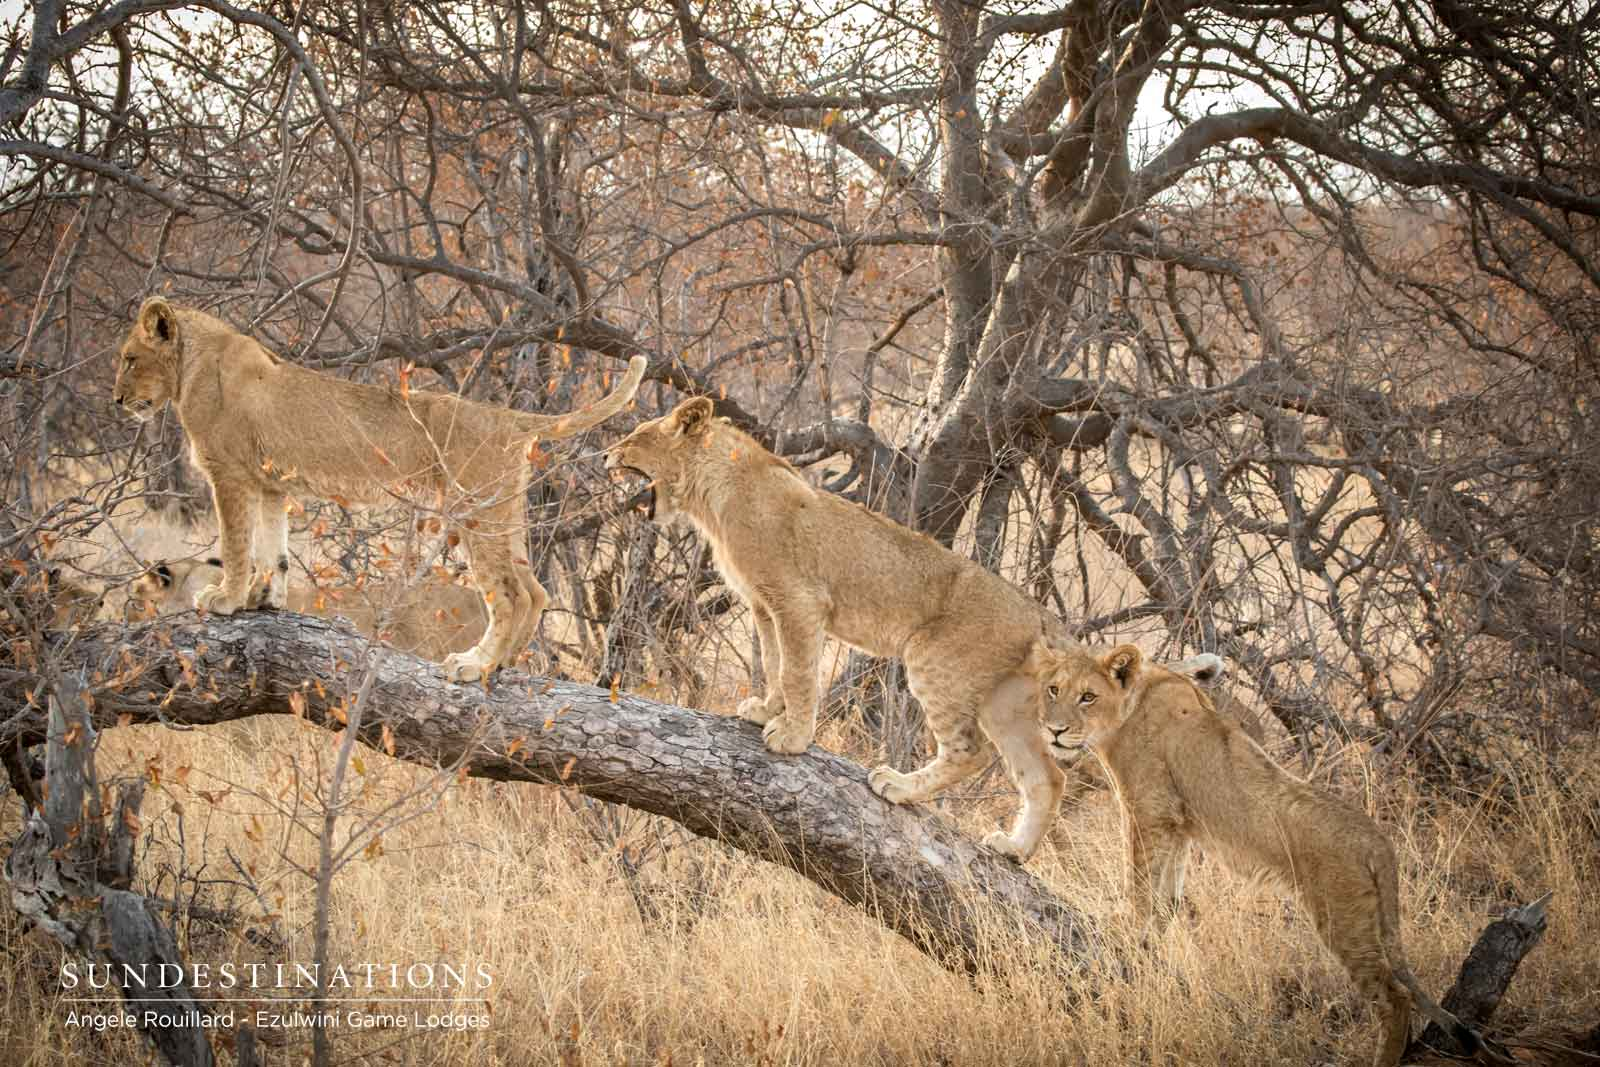 Kudyela Cubs in Procession